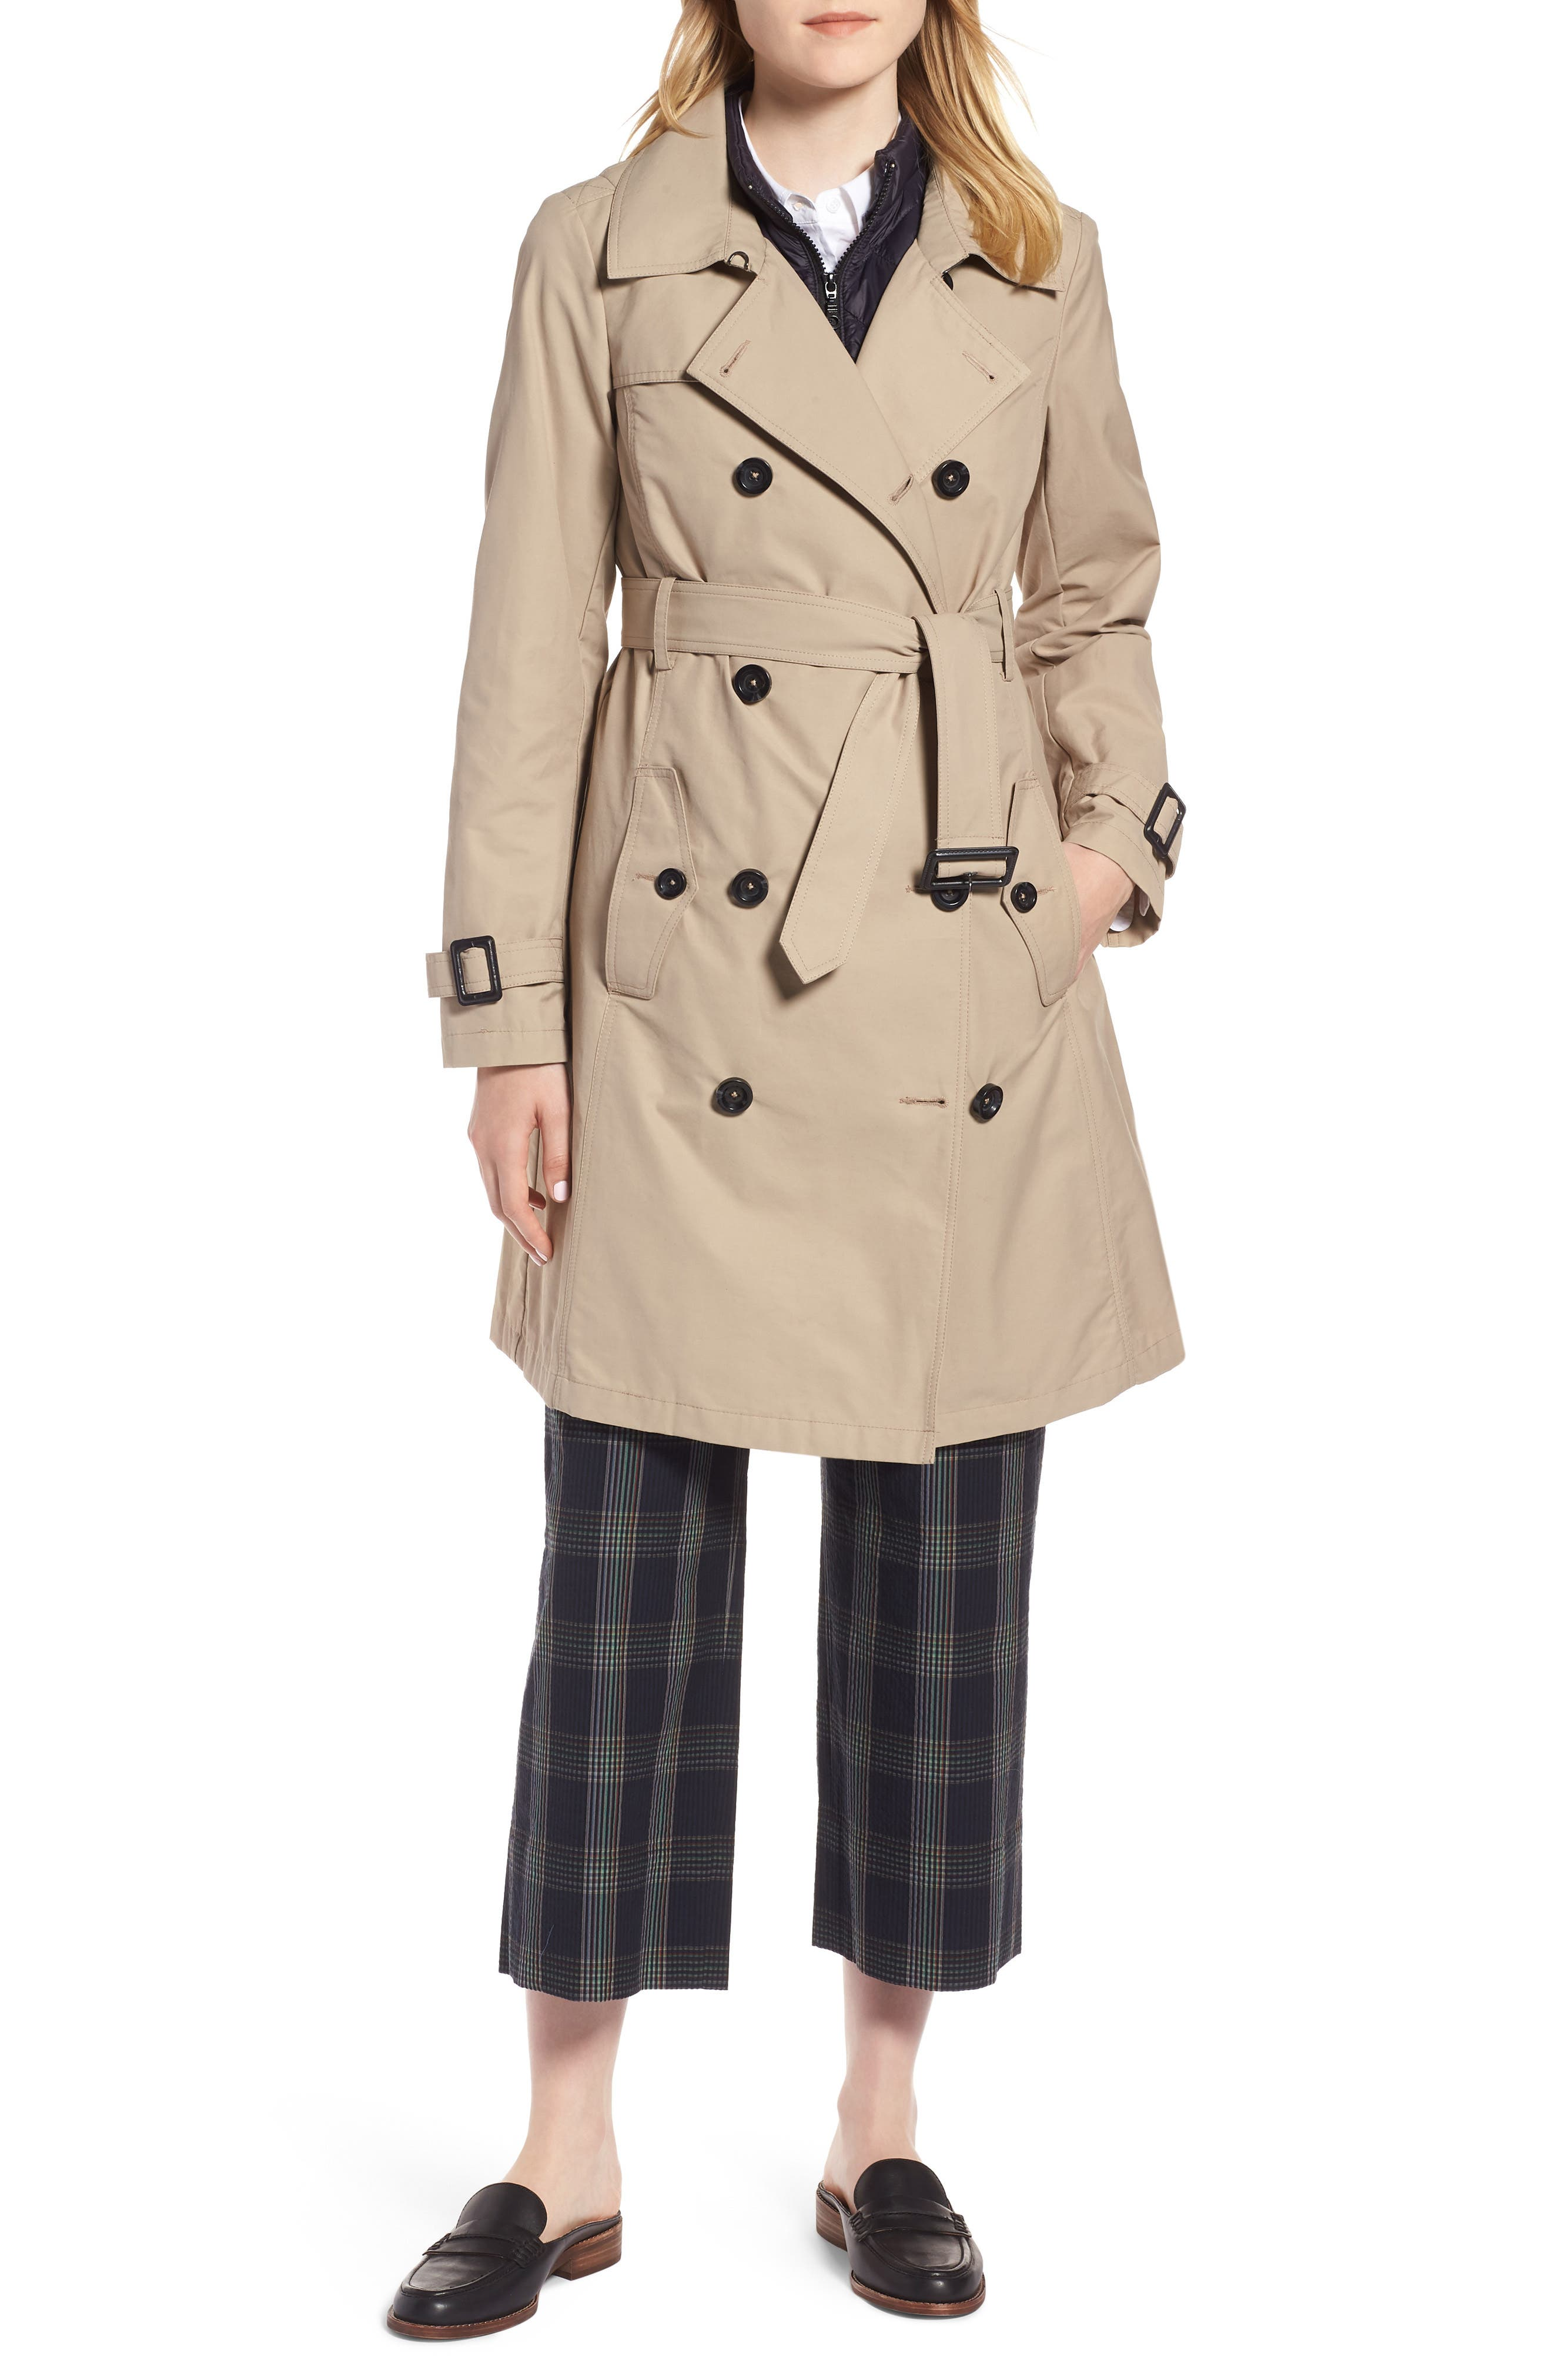 3-in-1 Trench Coat with Vest,                         Main,                         color, 299